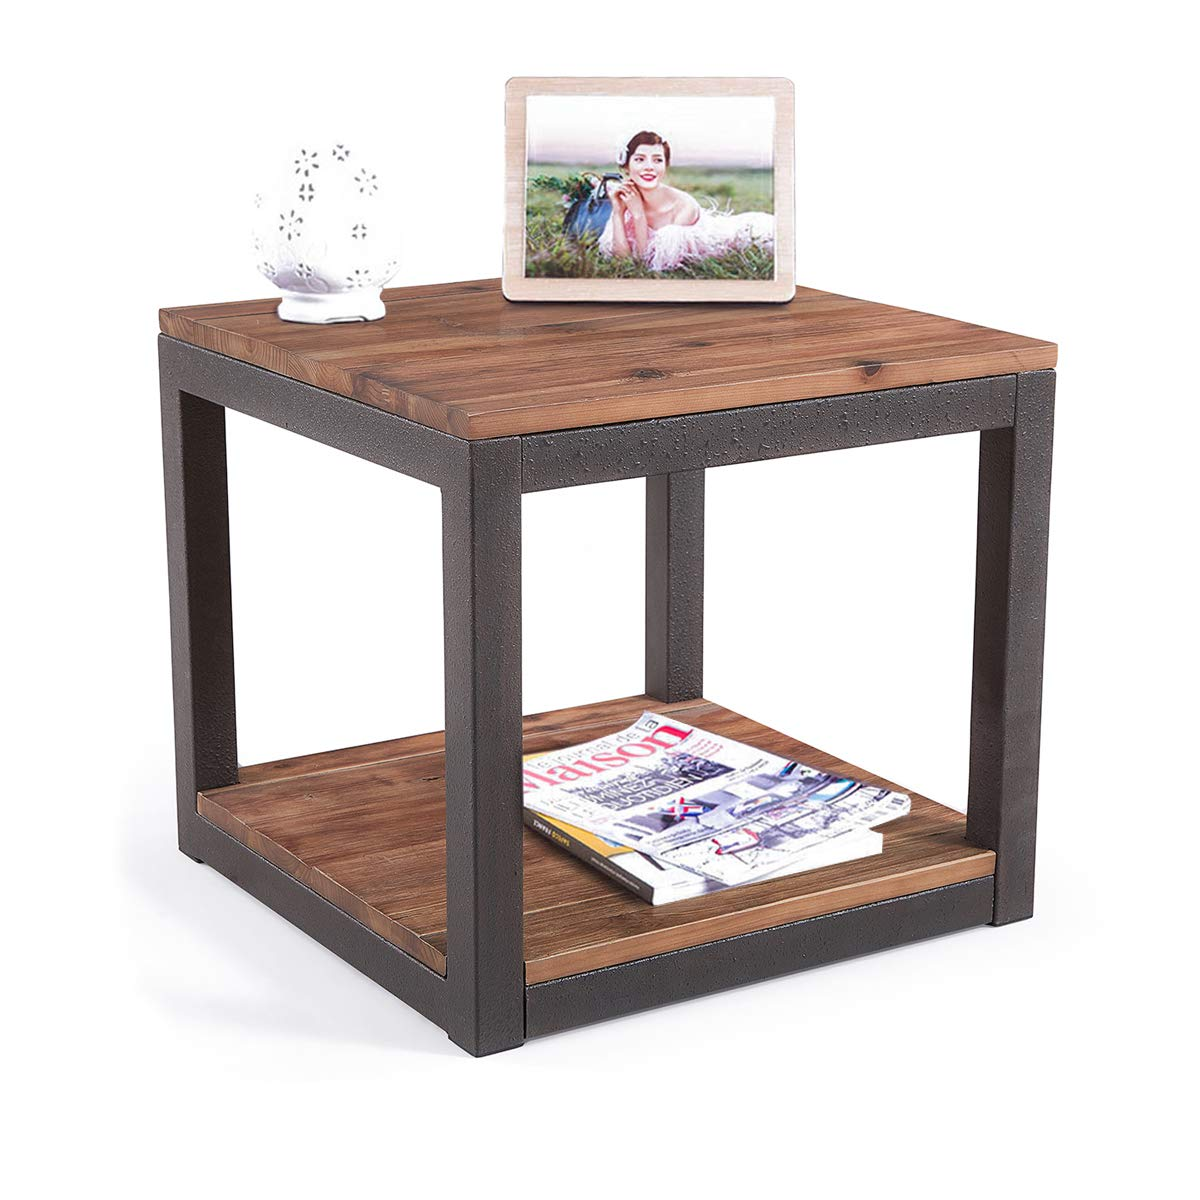 Care Royal Vintage Industrial Farmhouse 19.7 inches Side End Table with Storage Shelf for Living Room, Night Stand Bedroom, Natural Solid Reclaimed Wood, Sturdy Rustic Brown Metal Frame, Easy Assembly by Care Royal